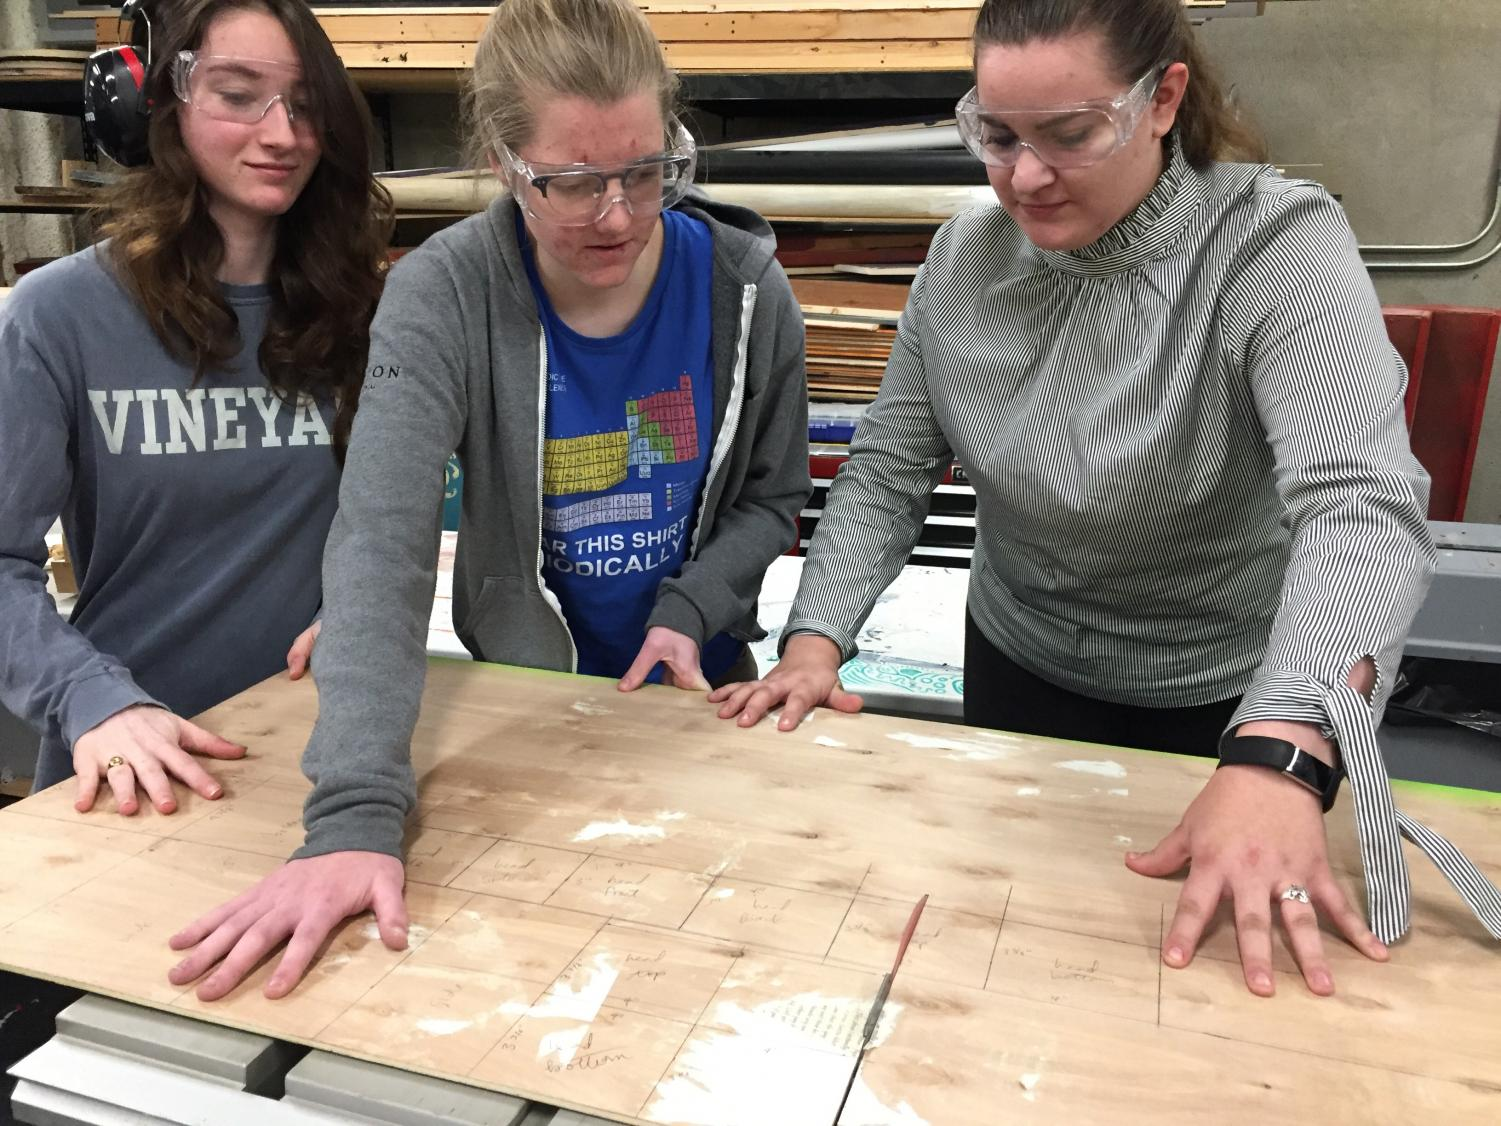 Seniors Natalie Lunbeck, Lizzie Bruce and Francesca Petruzzelli cut a piece of wood to make a robot using a table saw. The robot will serve as the Innobotics Club mascot.